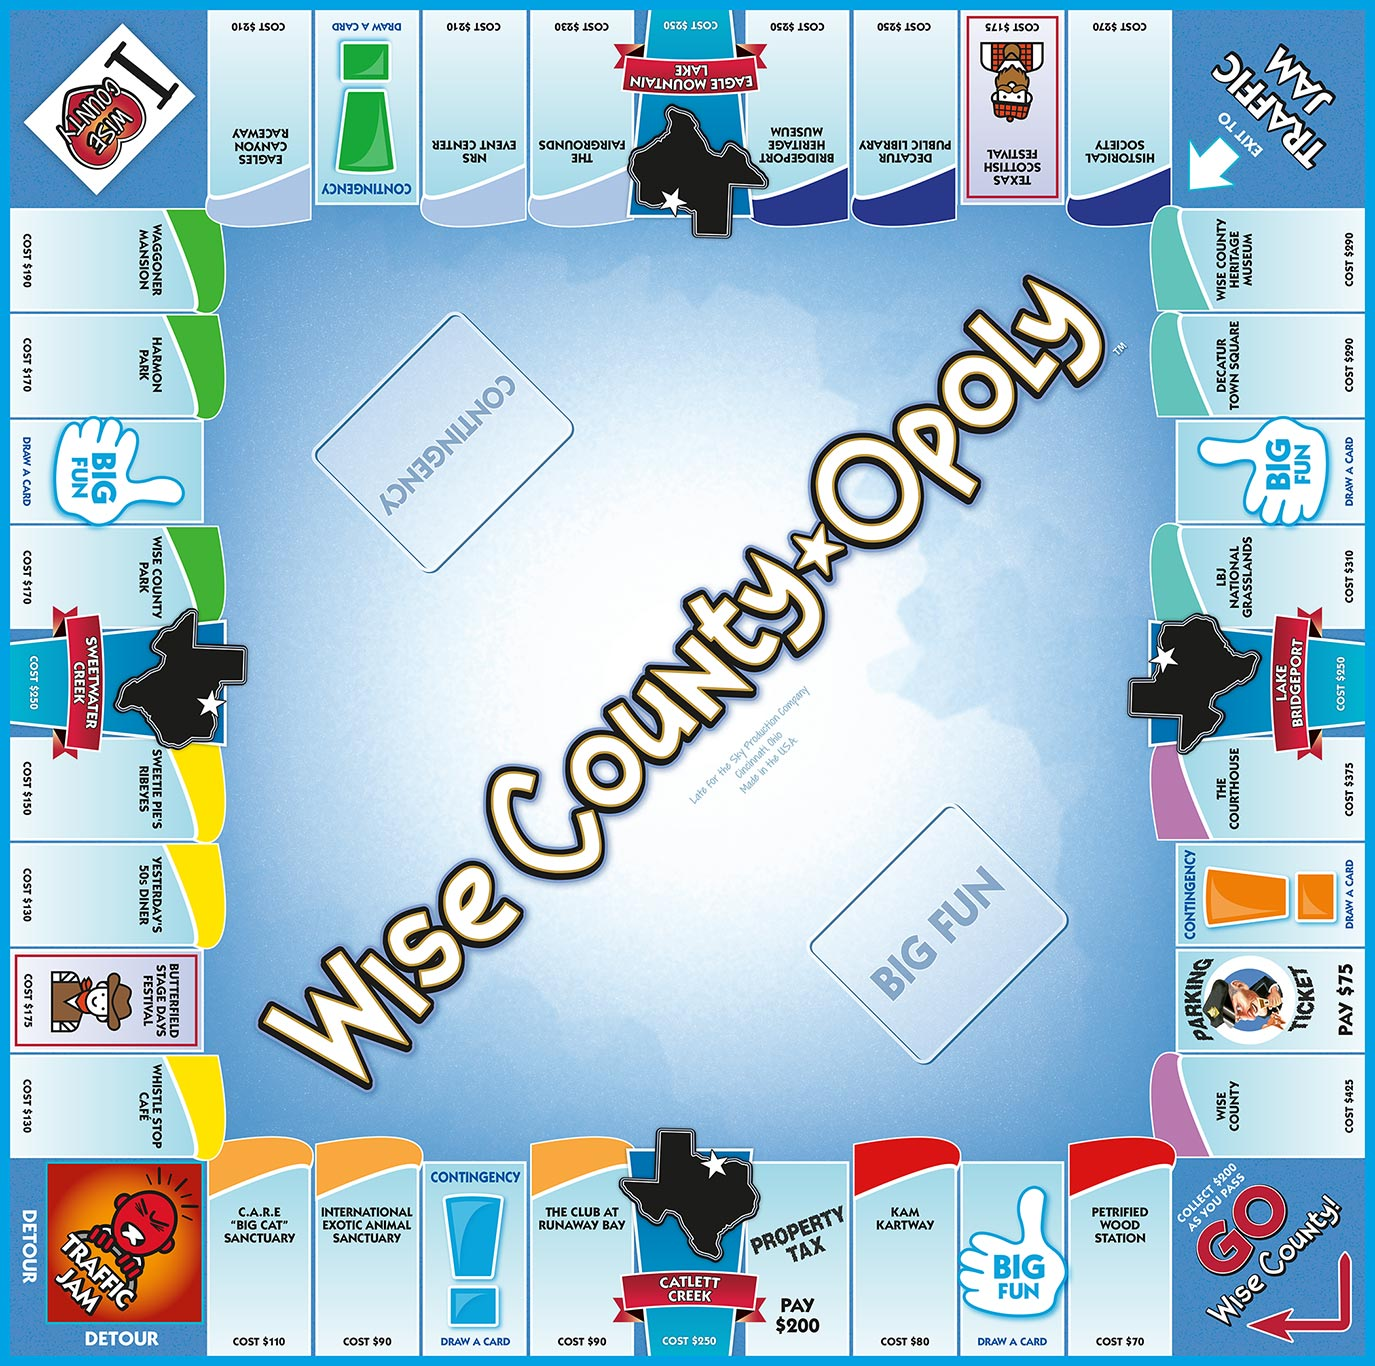 WISE COUNTY-OPOLY Board Game